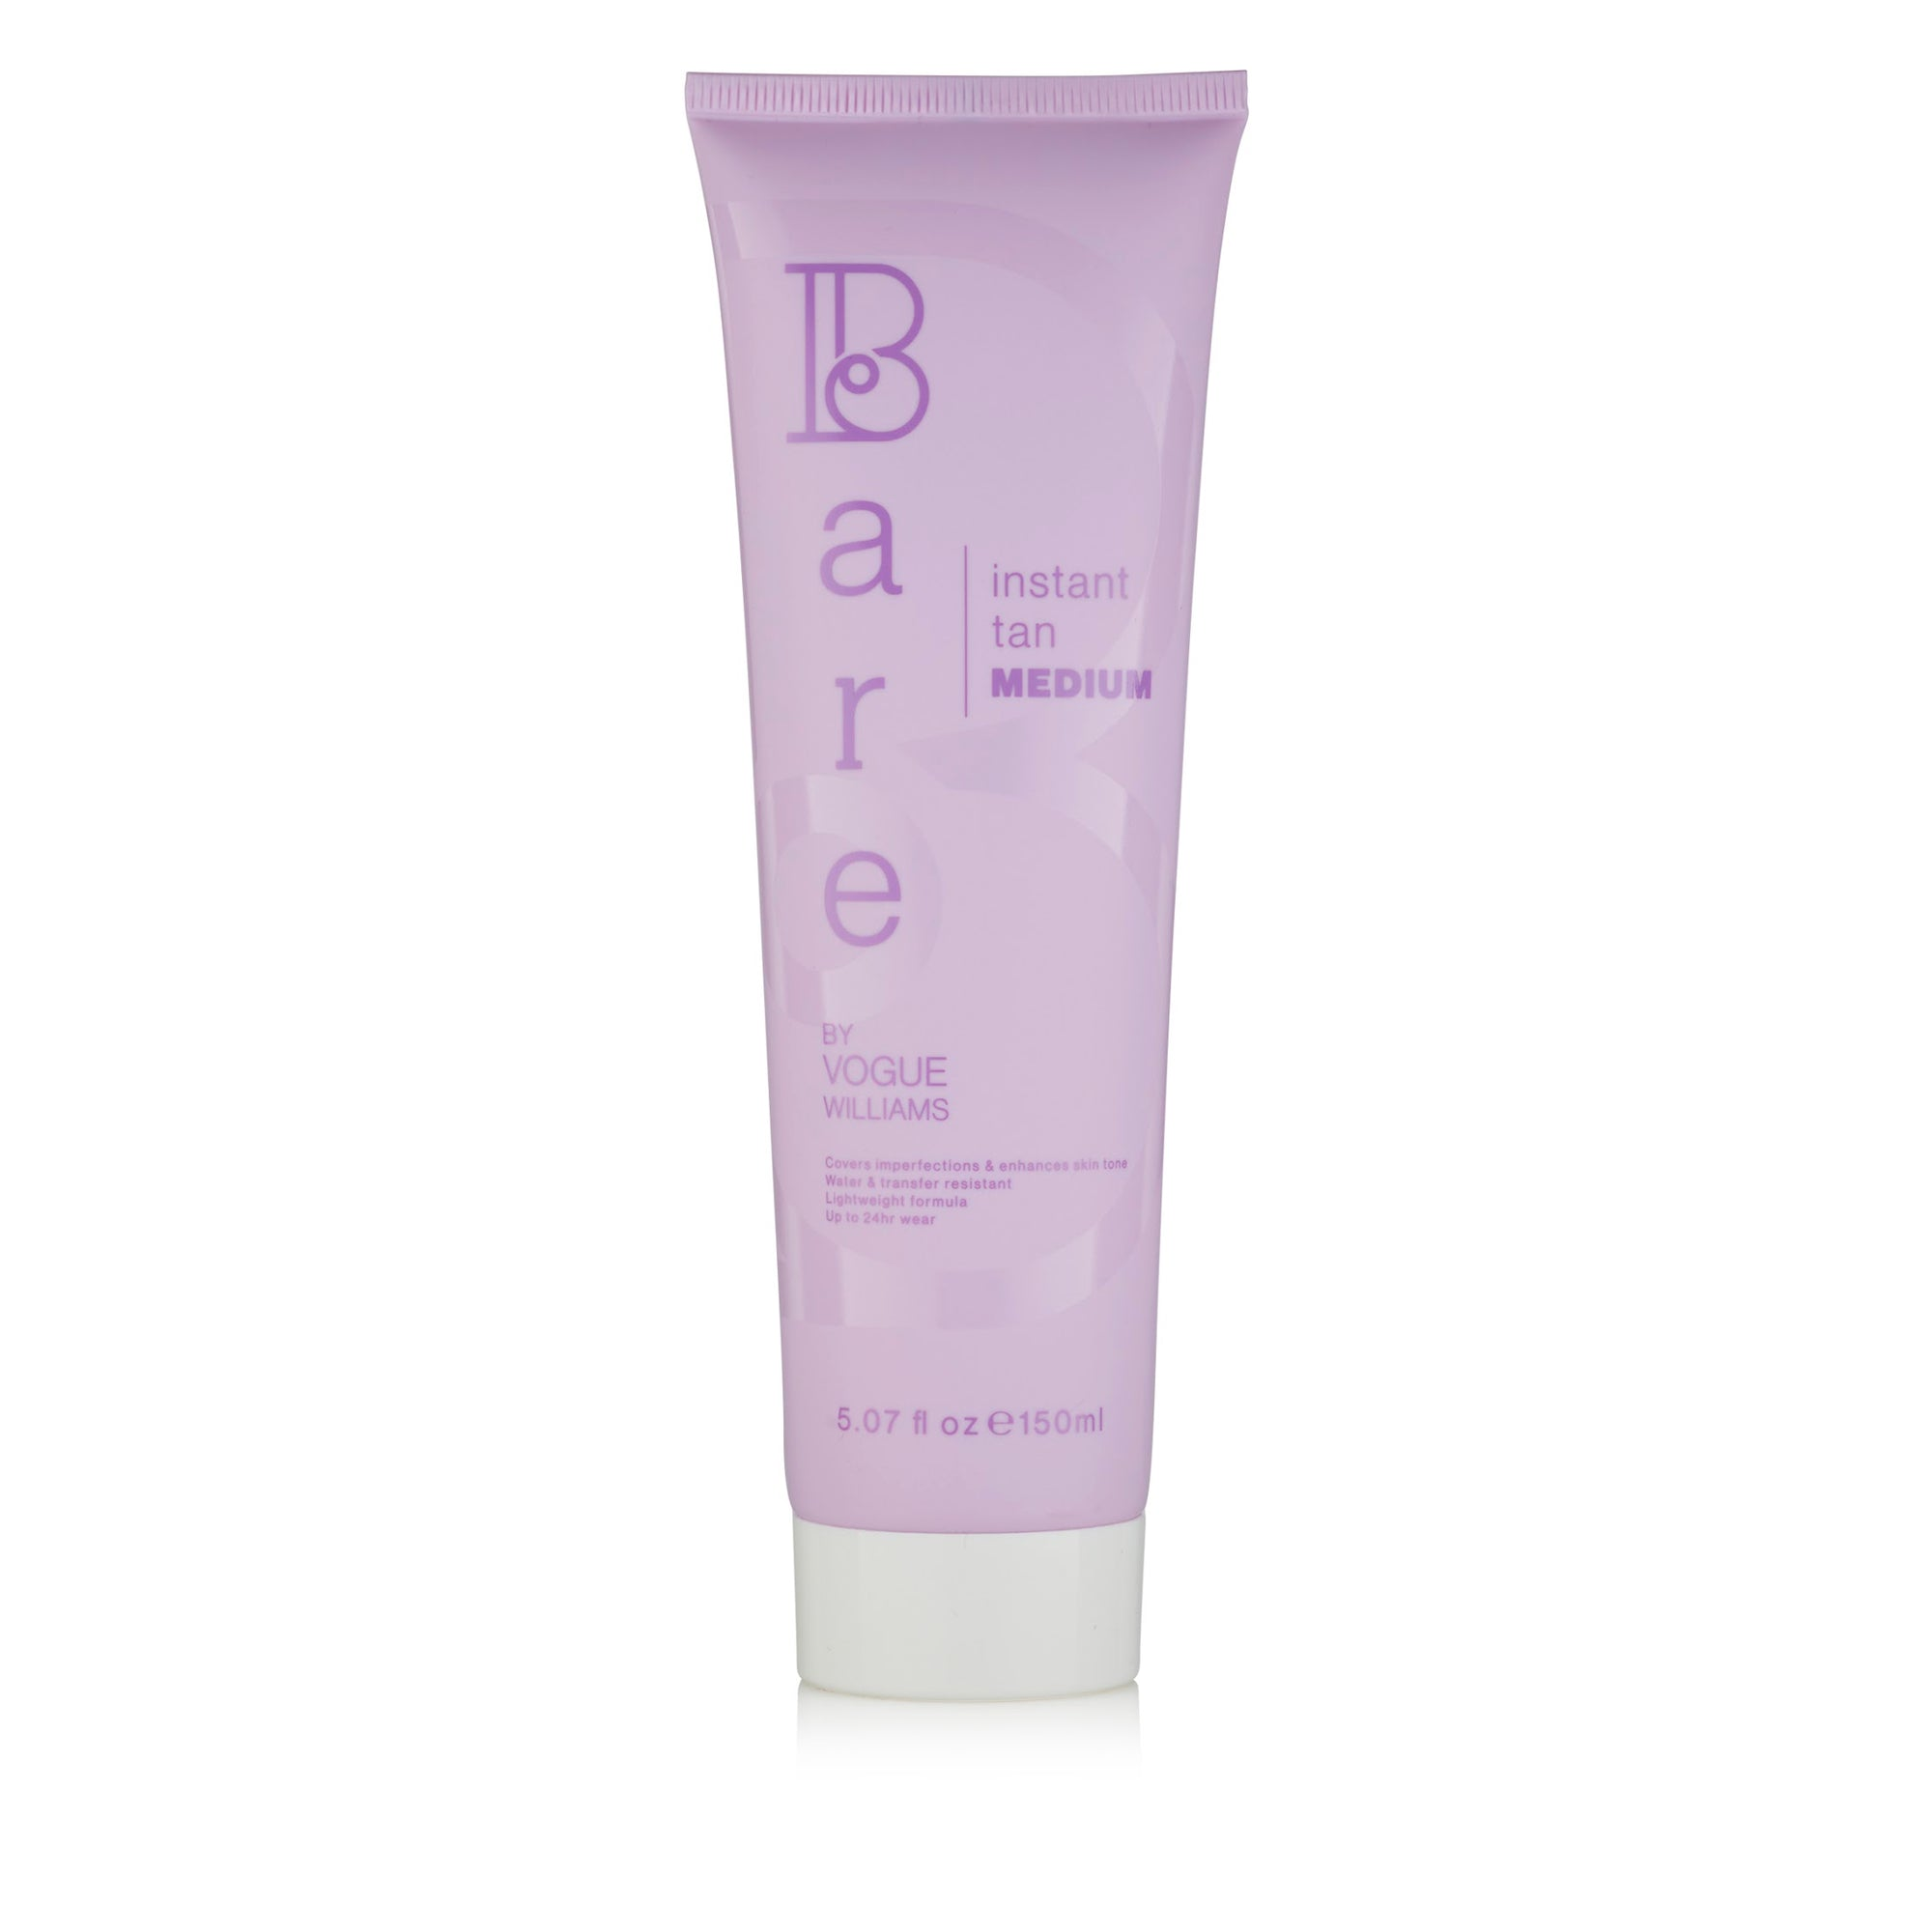 Bare by Vogue - Instant Tan - Medium - 150ml